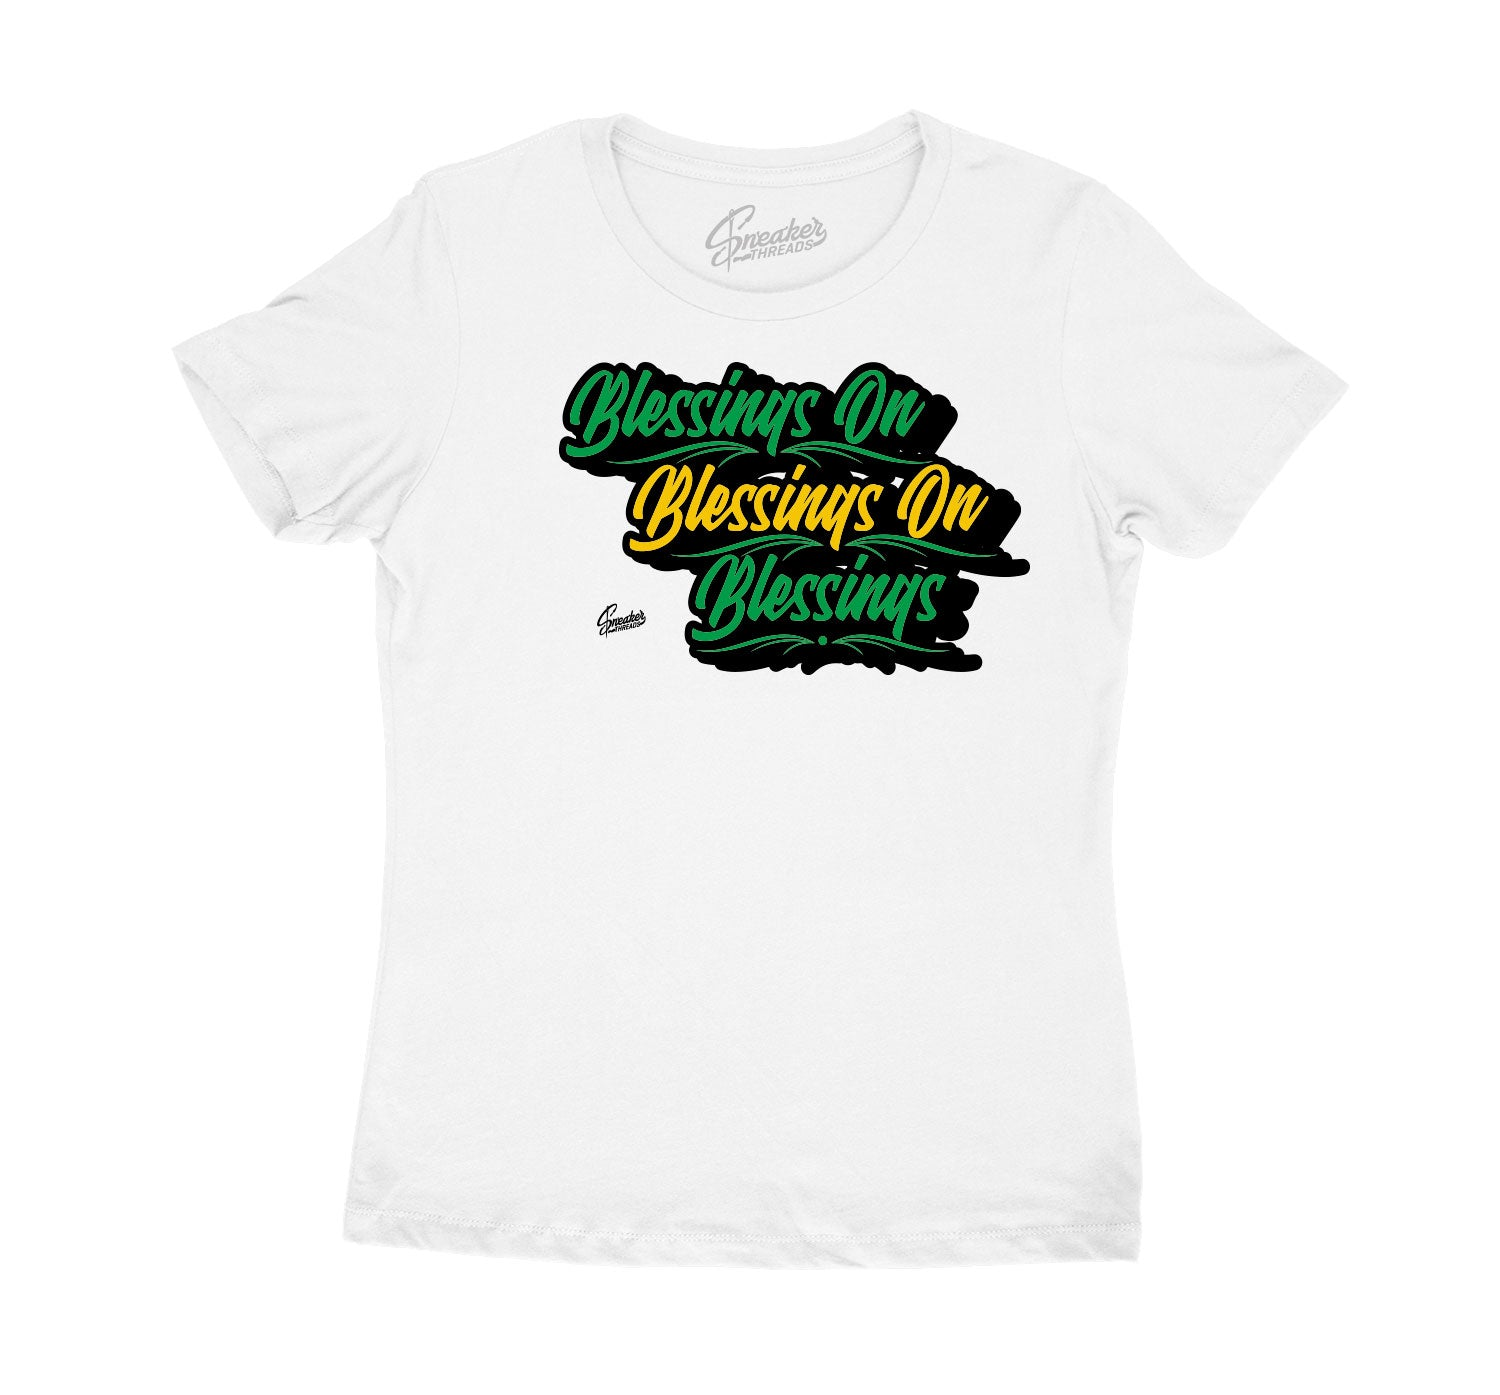 Jordan 10 Seattle retro sneakers ,matching ladies shirt